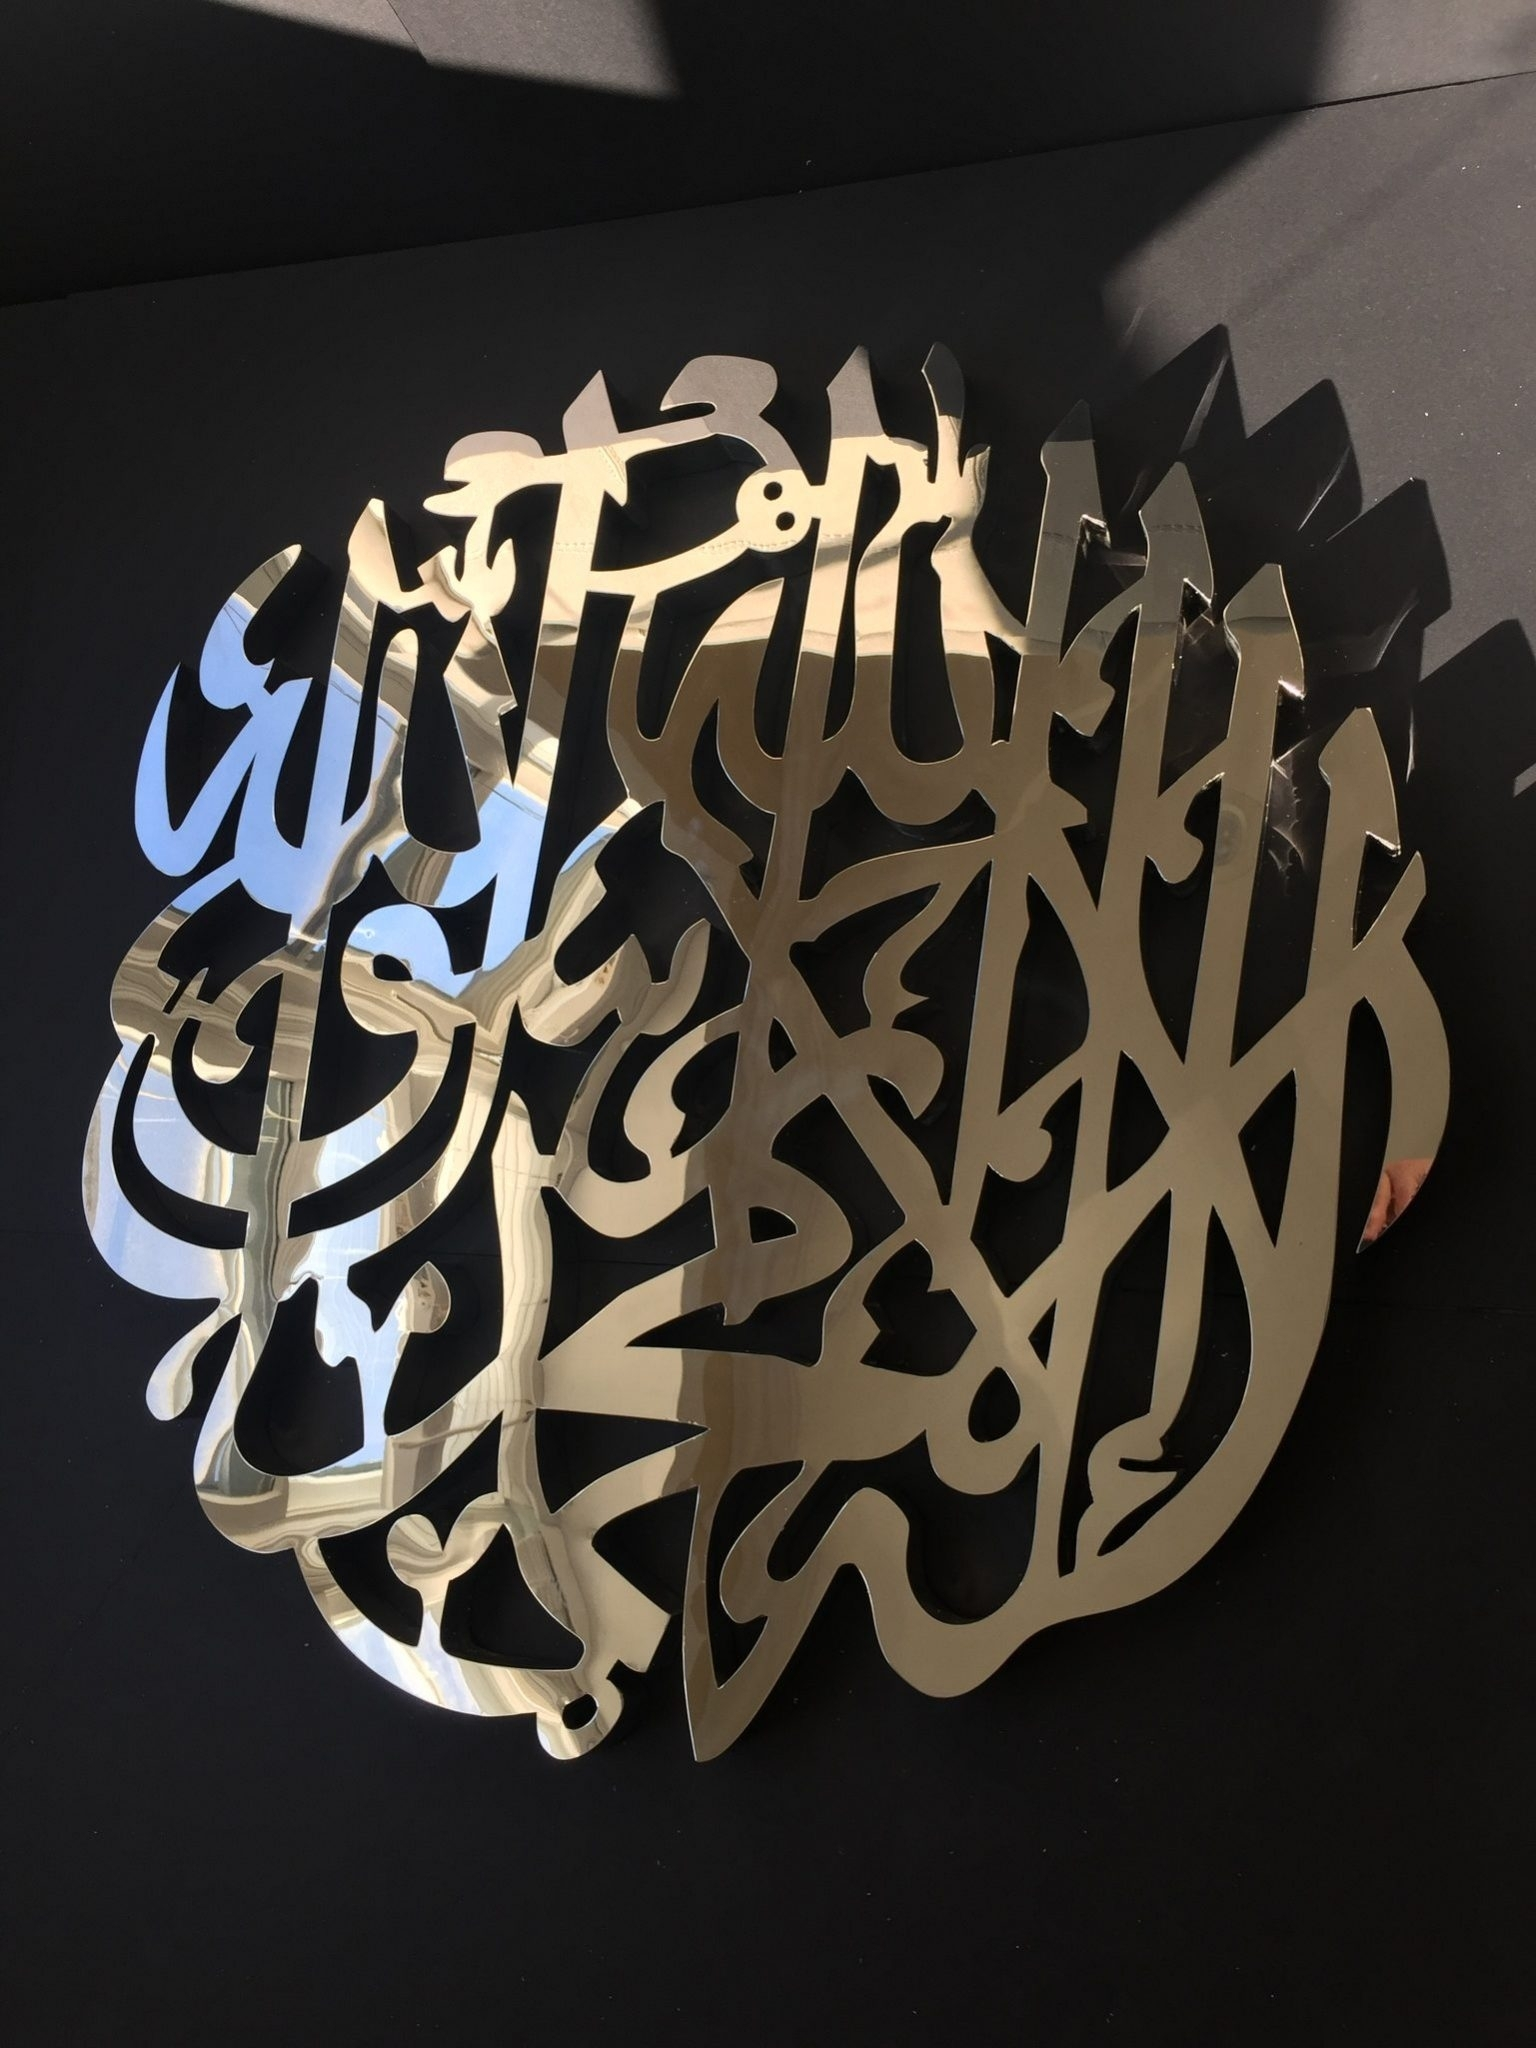 Shahada / Kalima  Modern Islamic Wall Art Calligraphy – Modern Within Newest Islamic Wall Art (View 12 of 15)